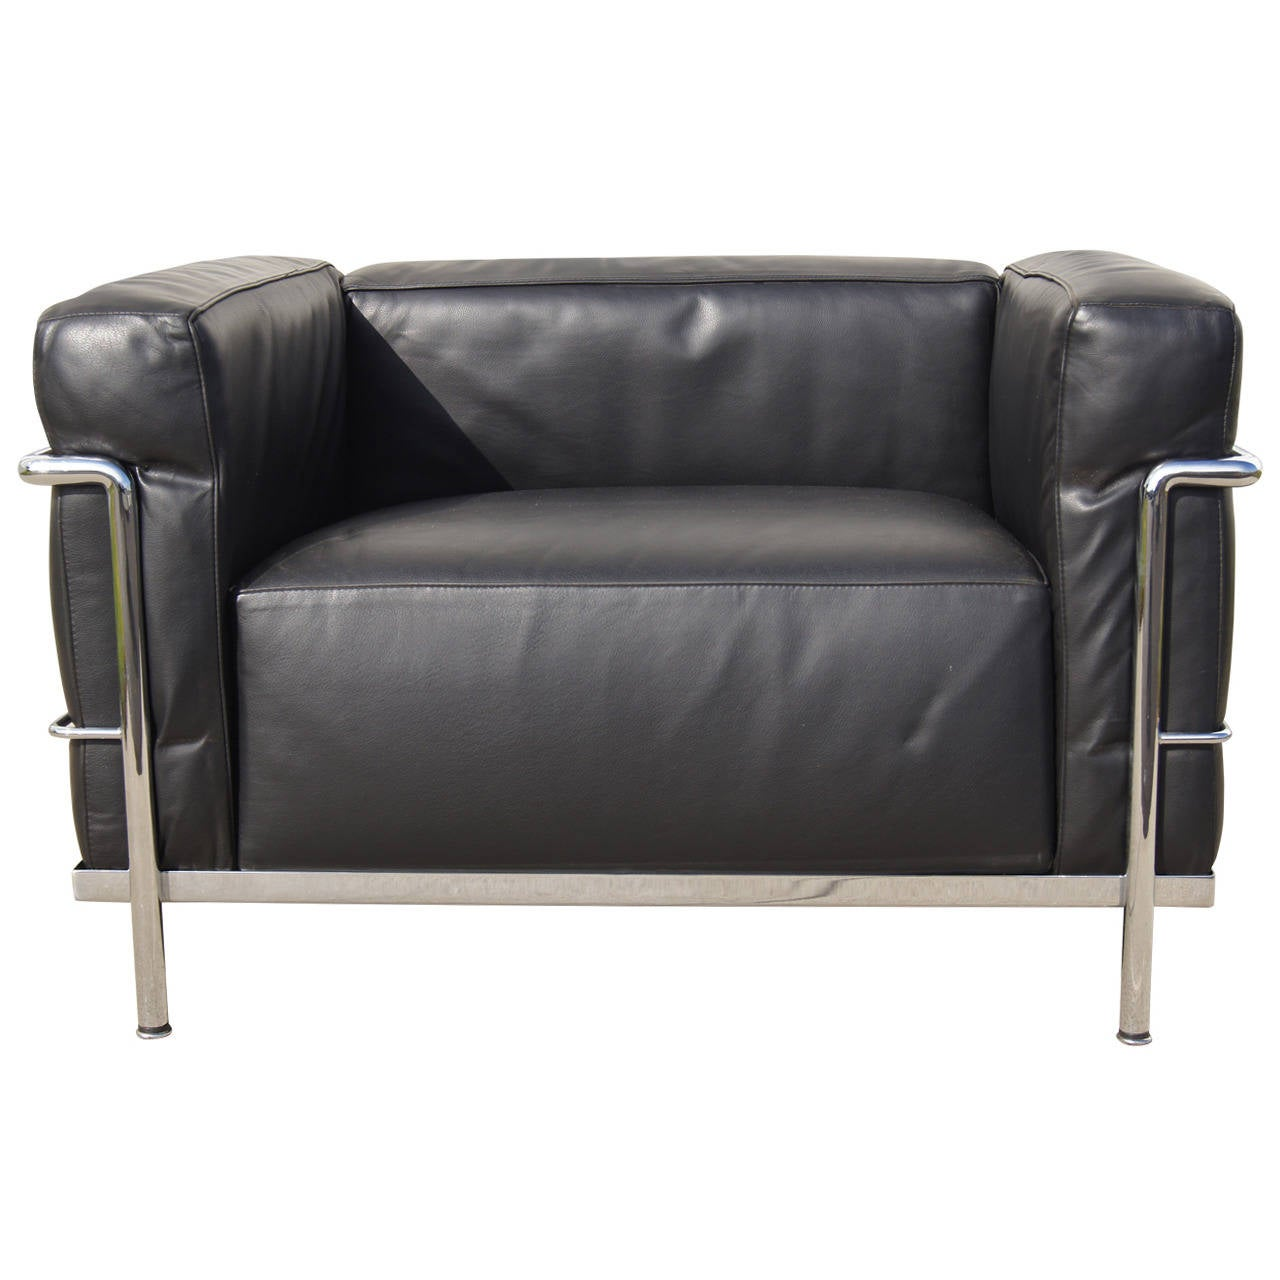 lc3 grand confort lounge chair by le corbusier at 1stdibs. Black Bedroom Furniture Sets. Home Design Ideas